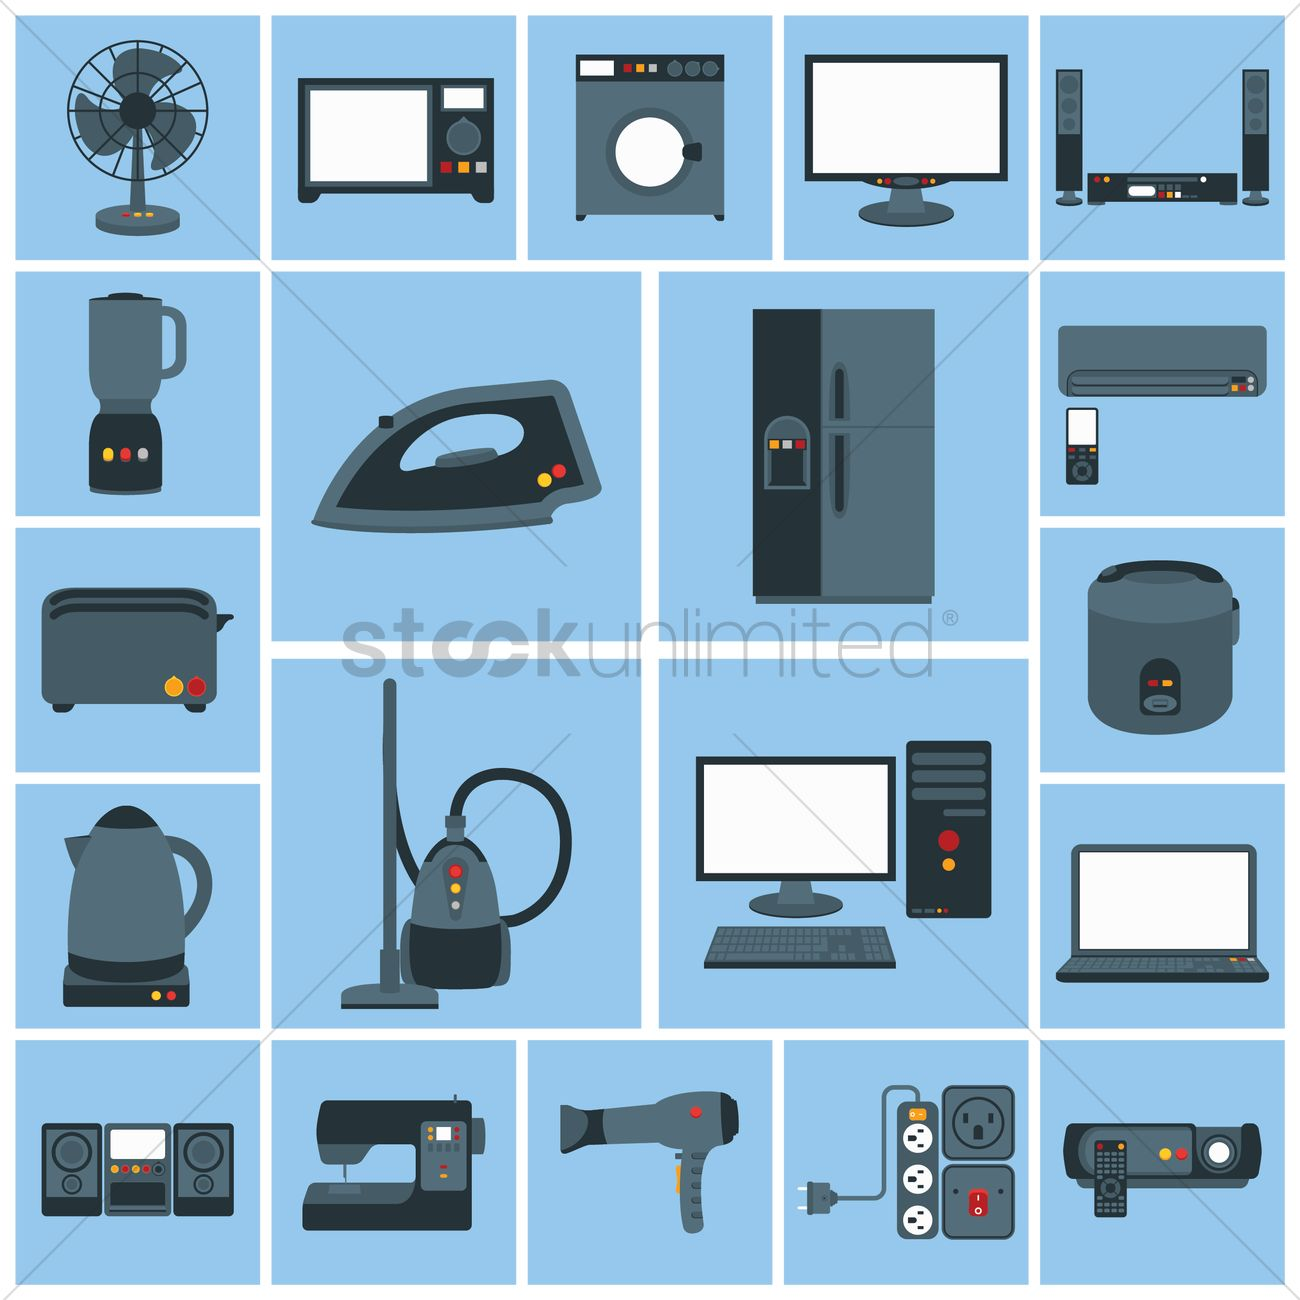 Home Items: Various Home Appliances And Household Items Vector Image